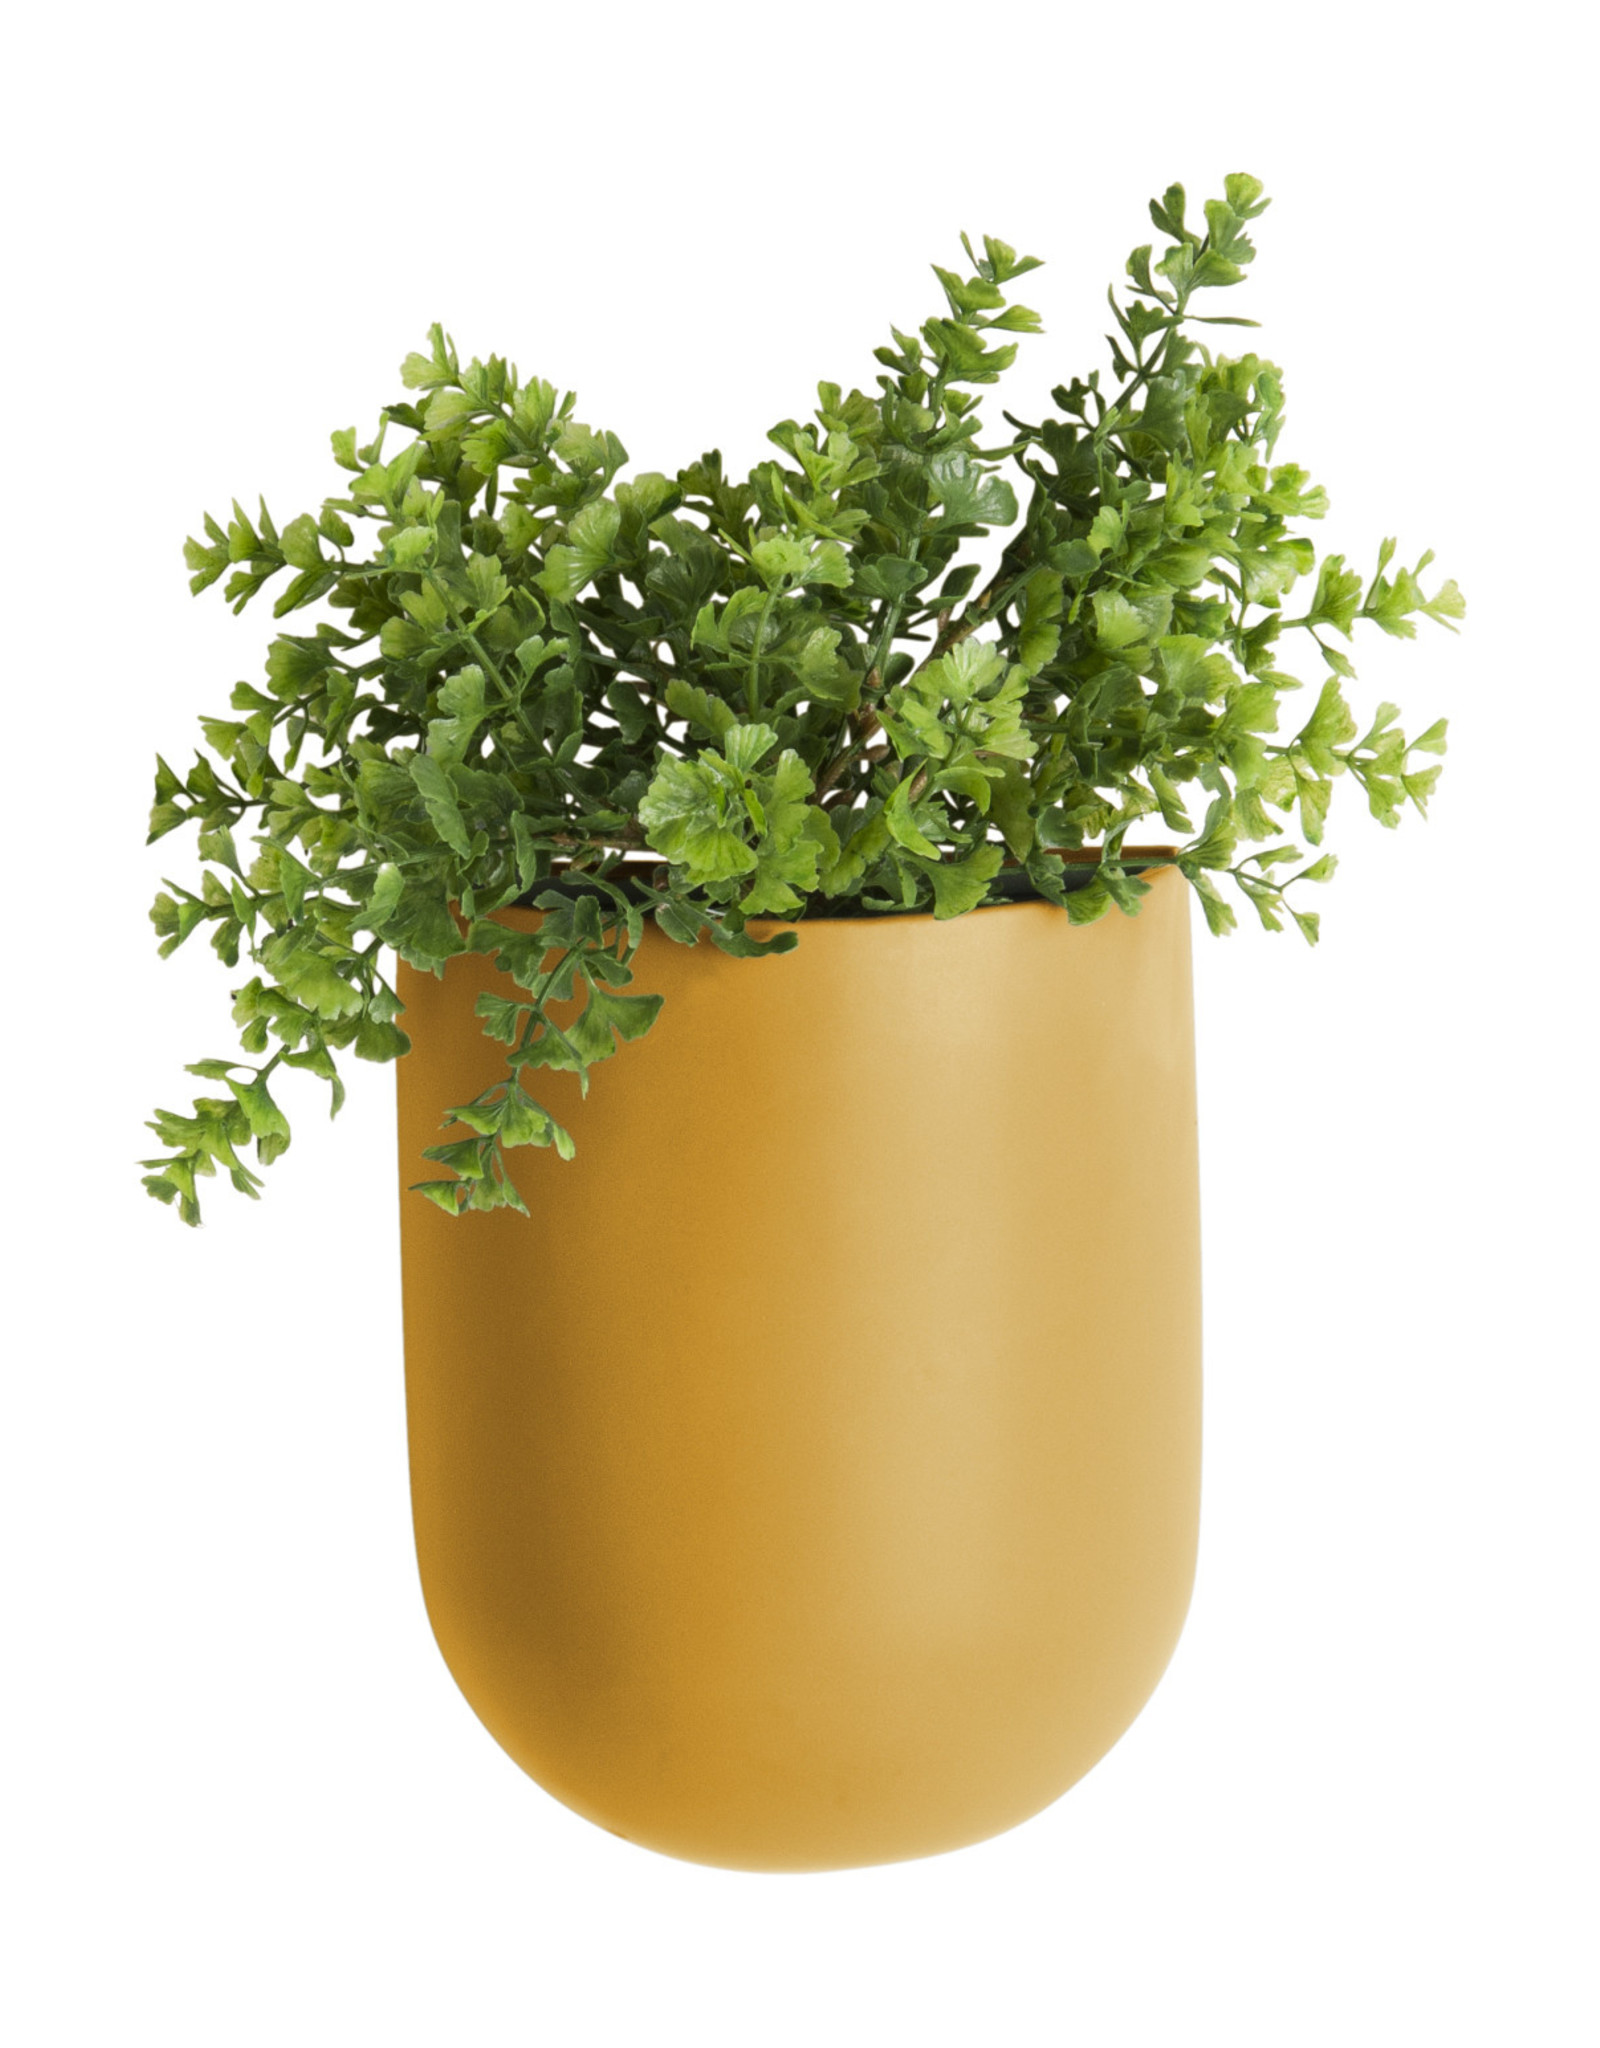 Present Time Present Time Wall plant pot